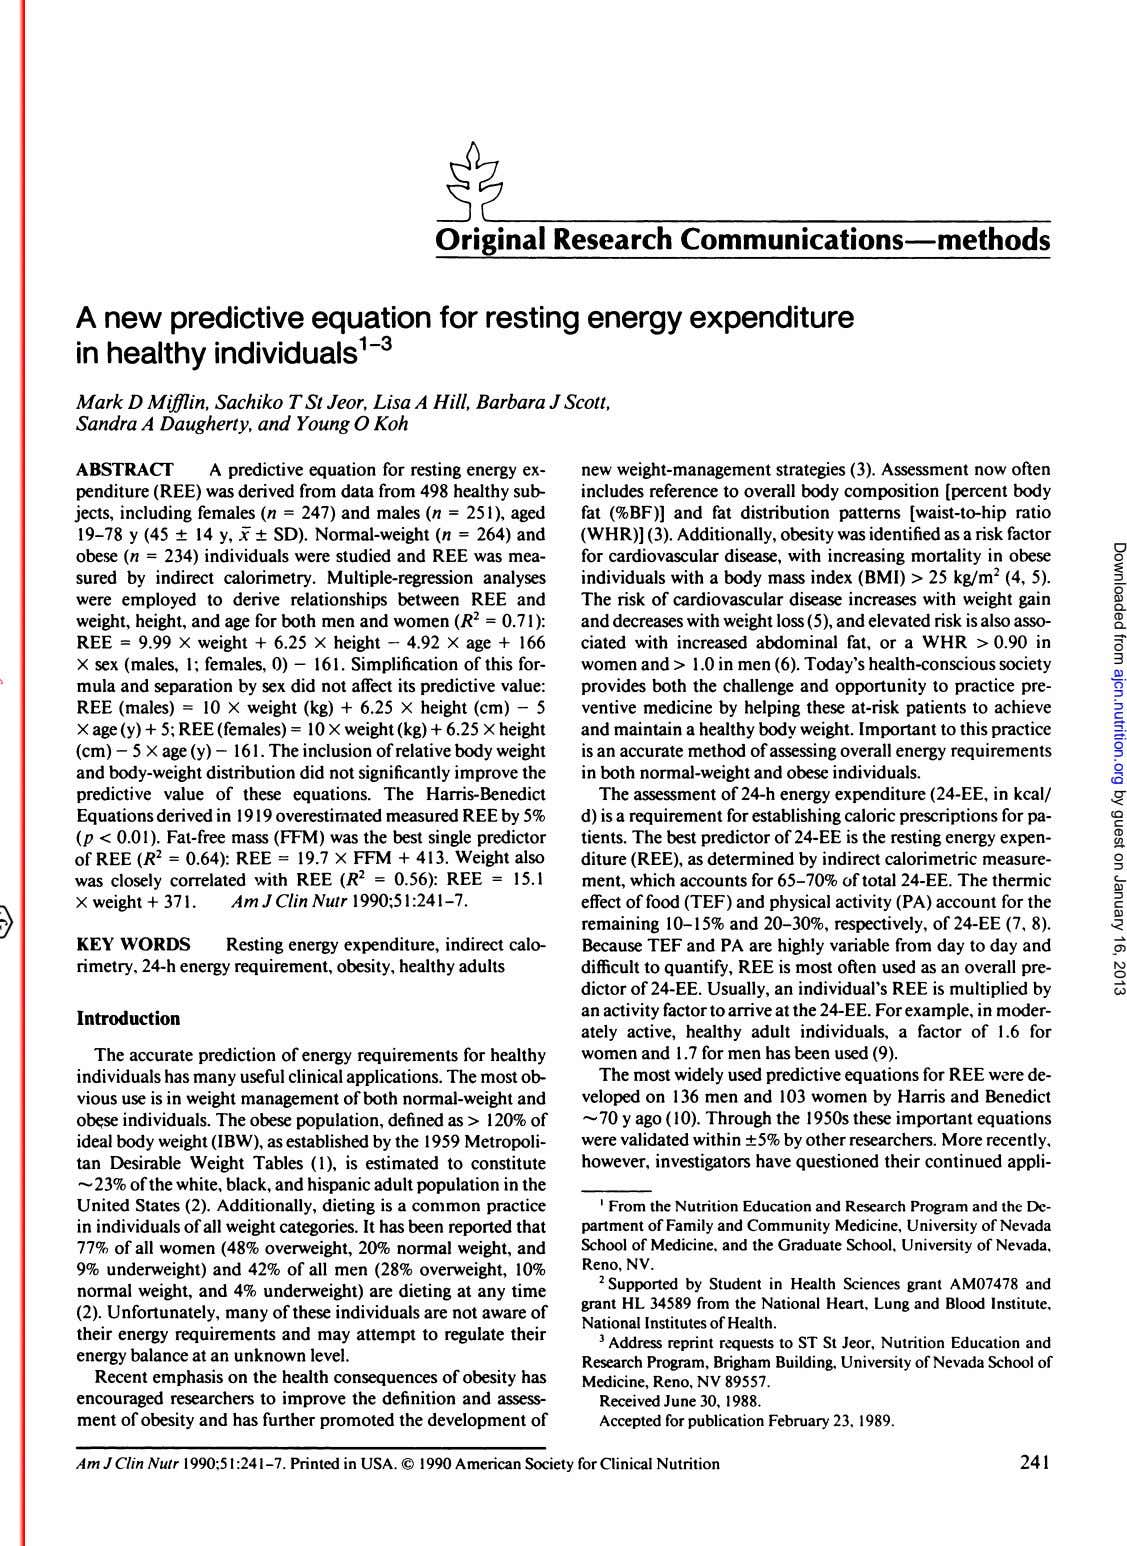 Original Research Communications-methods A new predictive equation for resting energy expenditure in healthy individuals 3 Downloaded